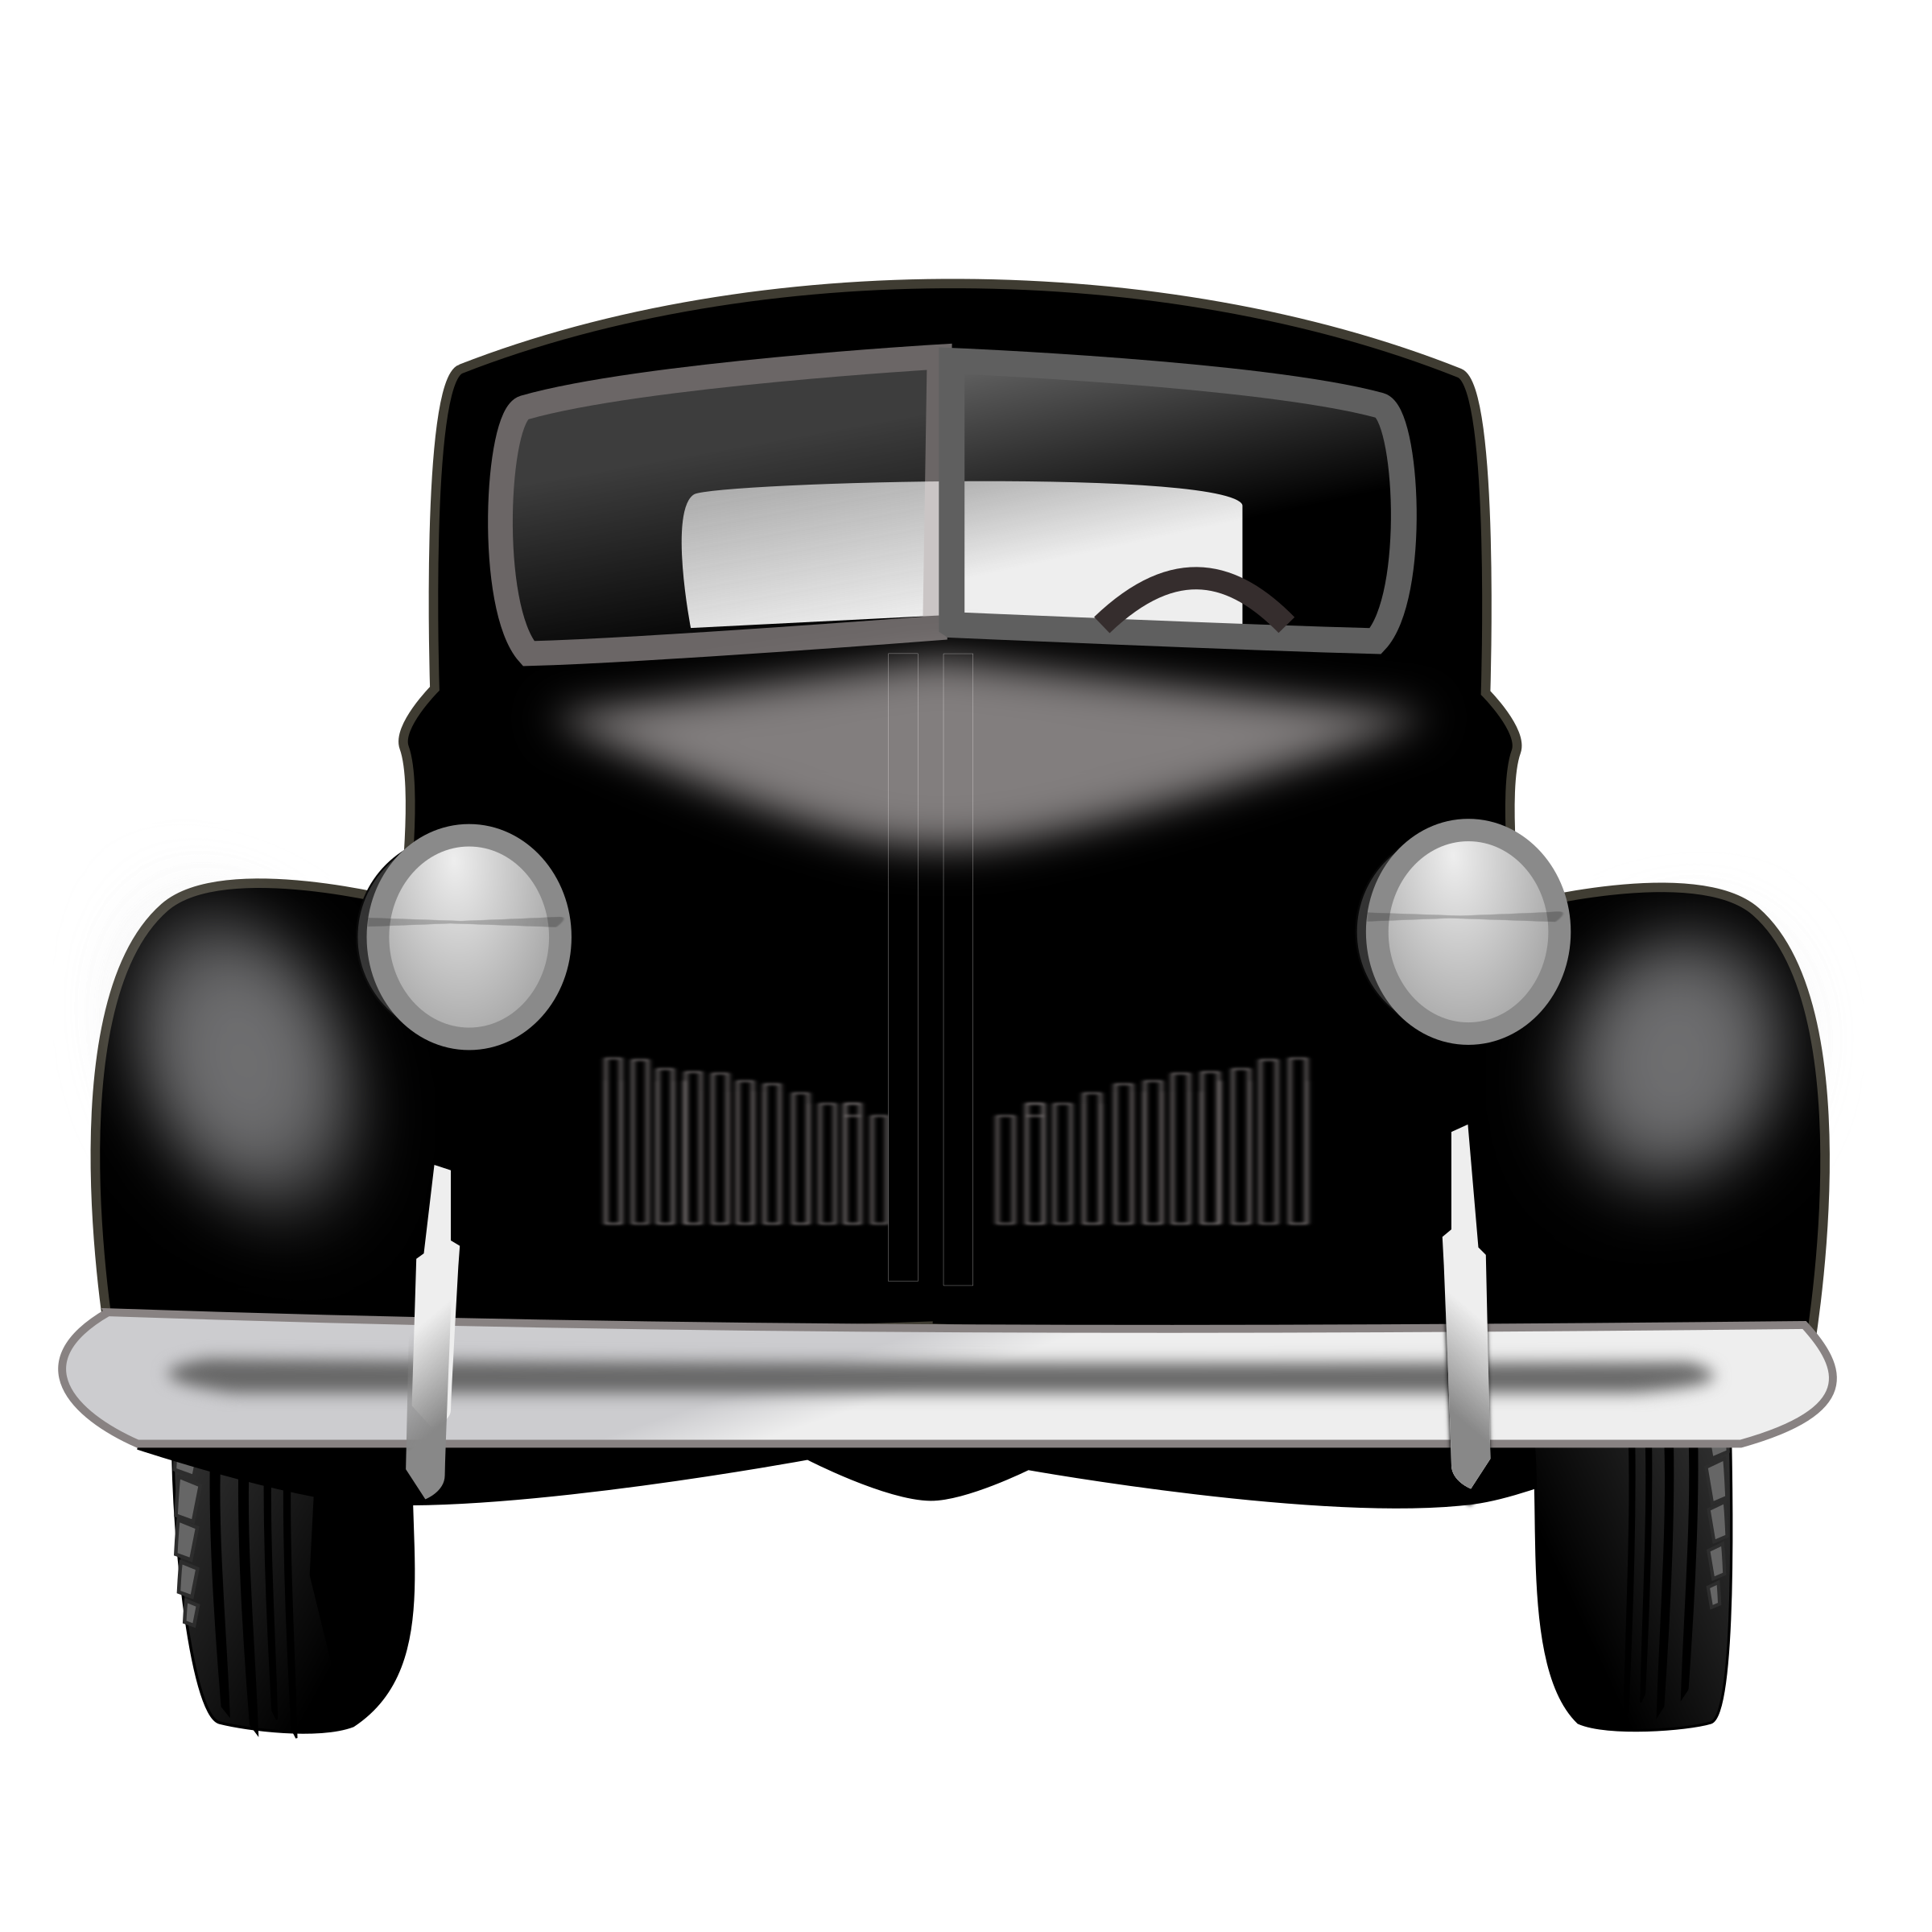 Old fashioned car clipart vector royalty free stock Clipart - classic-car-3 vector royalty free stock